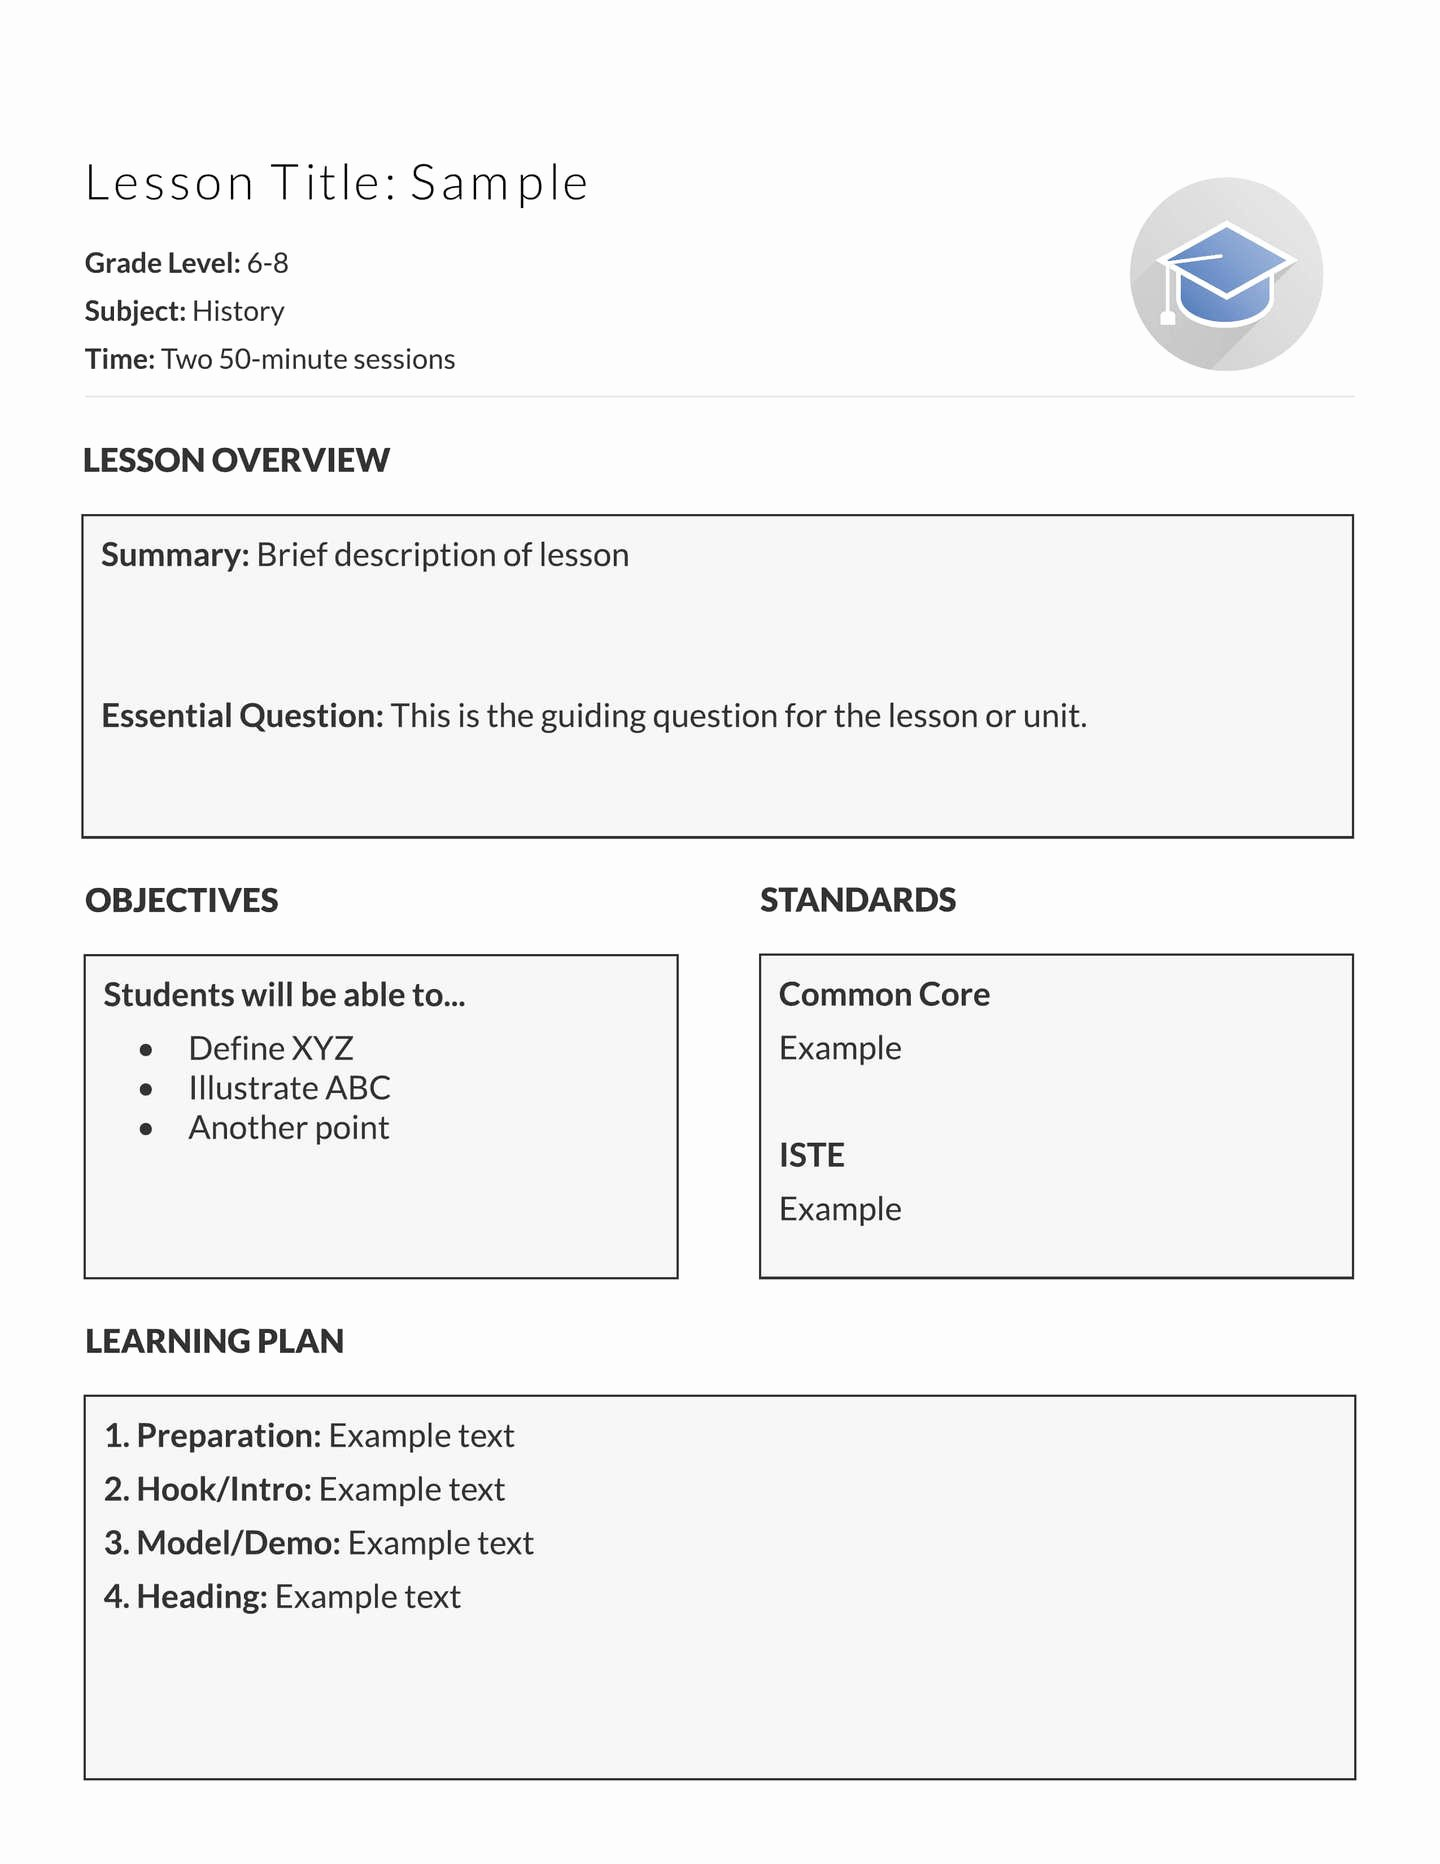 Texas Lesson Plan Template Awesome Sample Lesson Plan Template